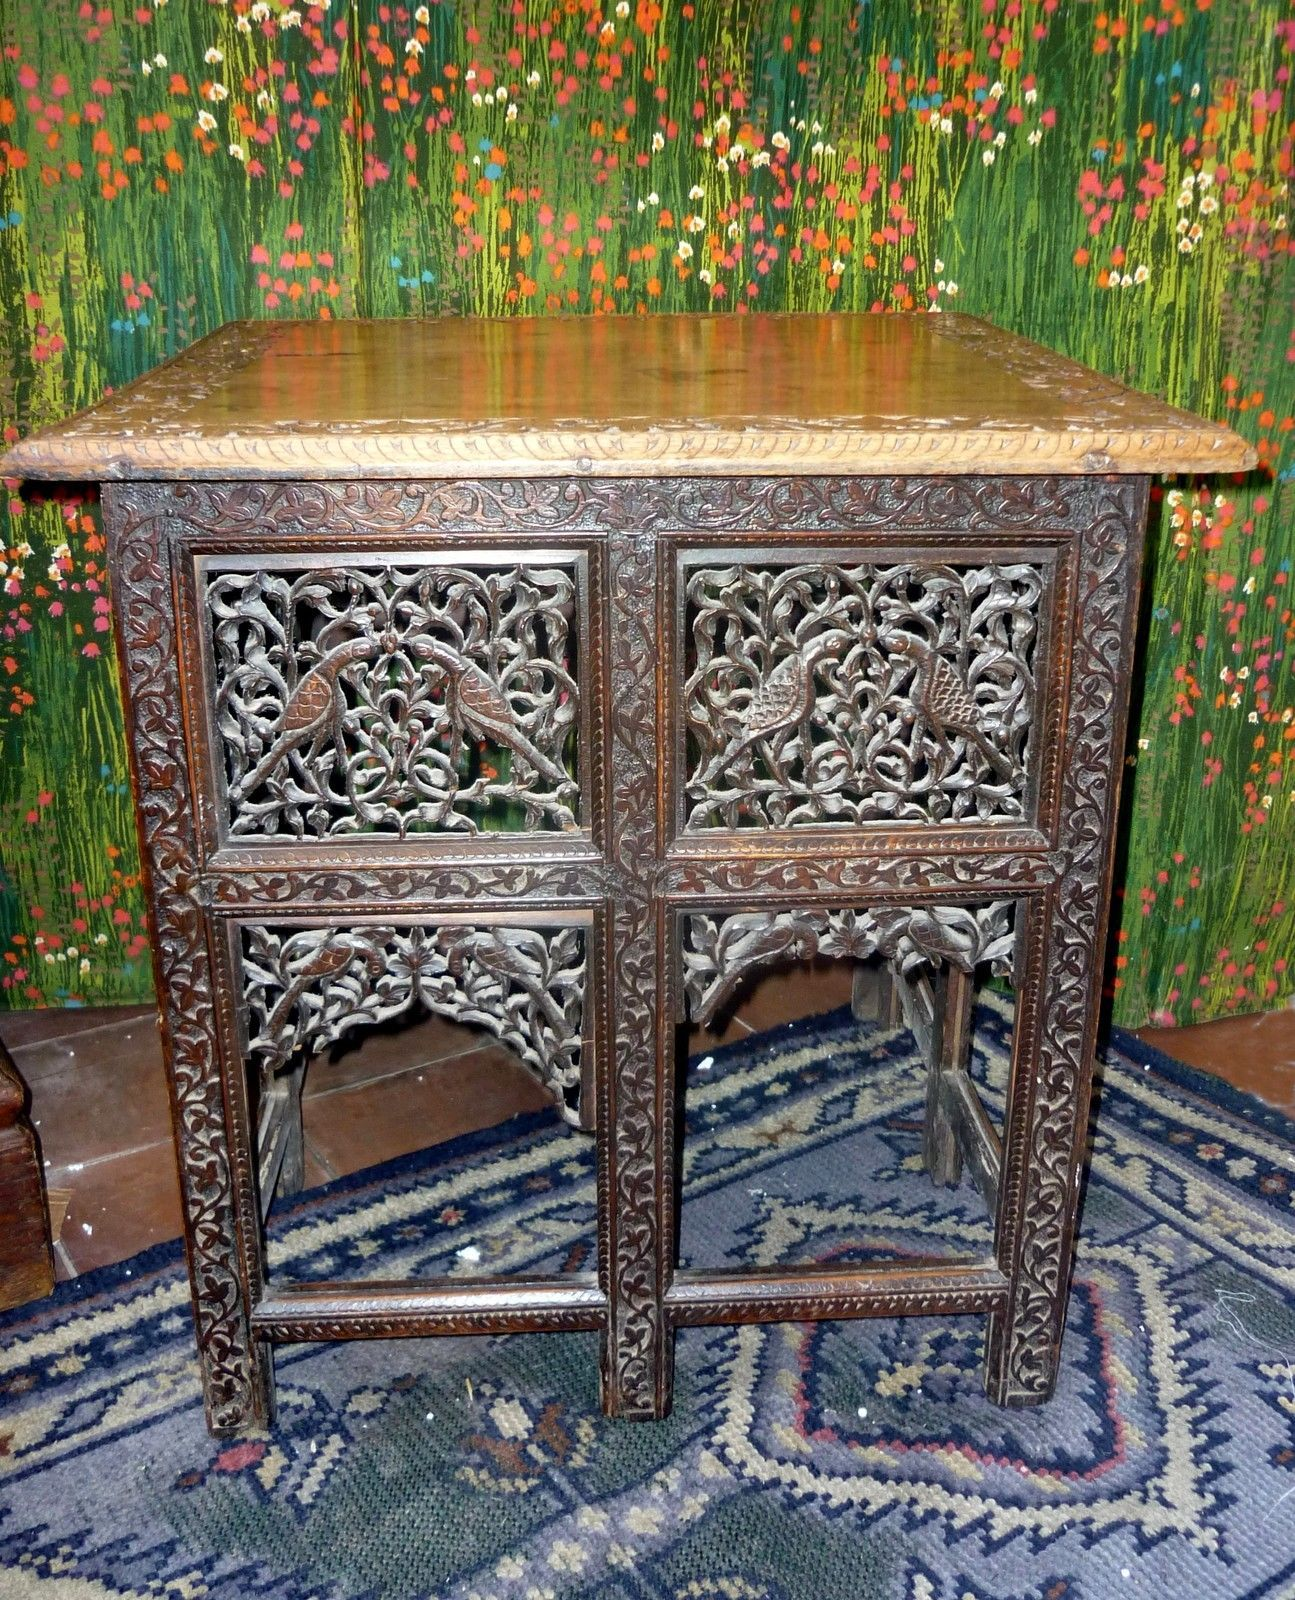 ANTIQUE INDIAN Side TABLE With BEAUTIFUL HAND-CARVED